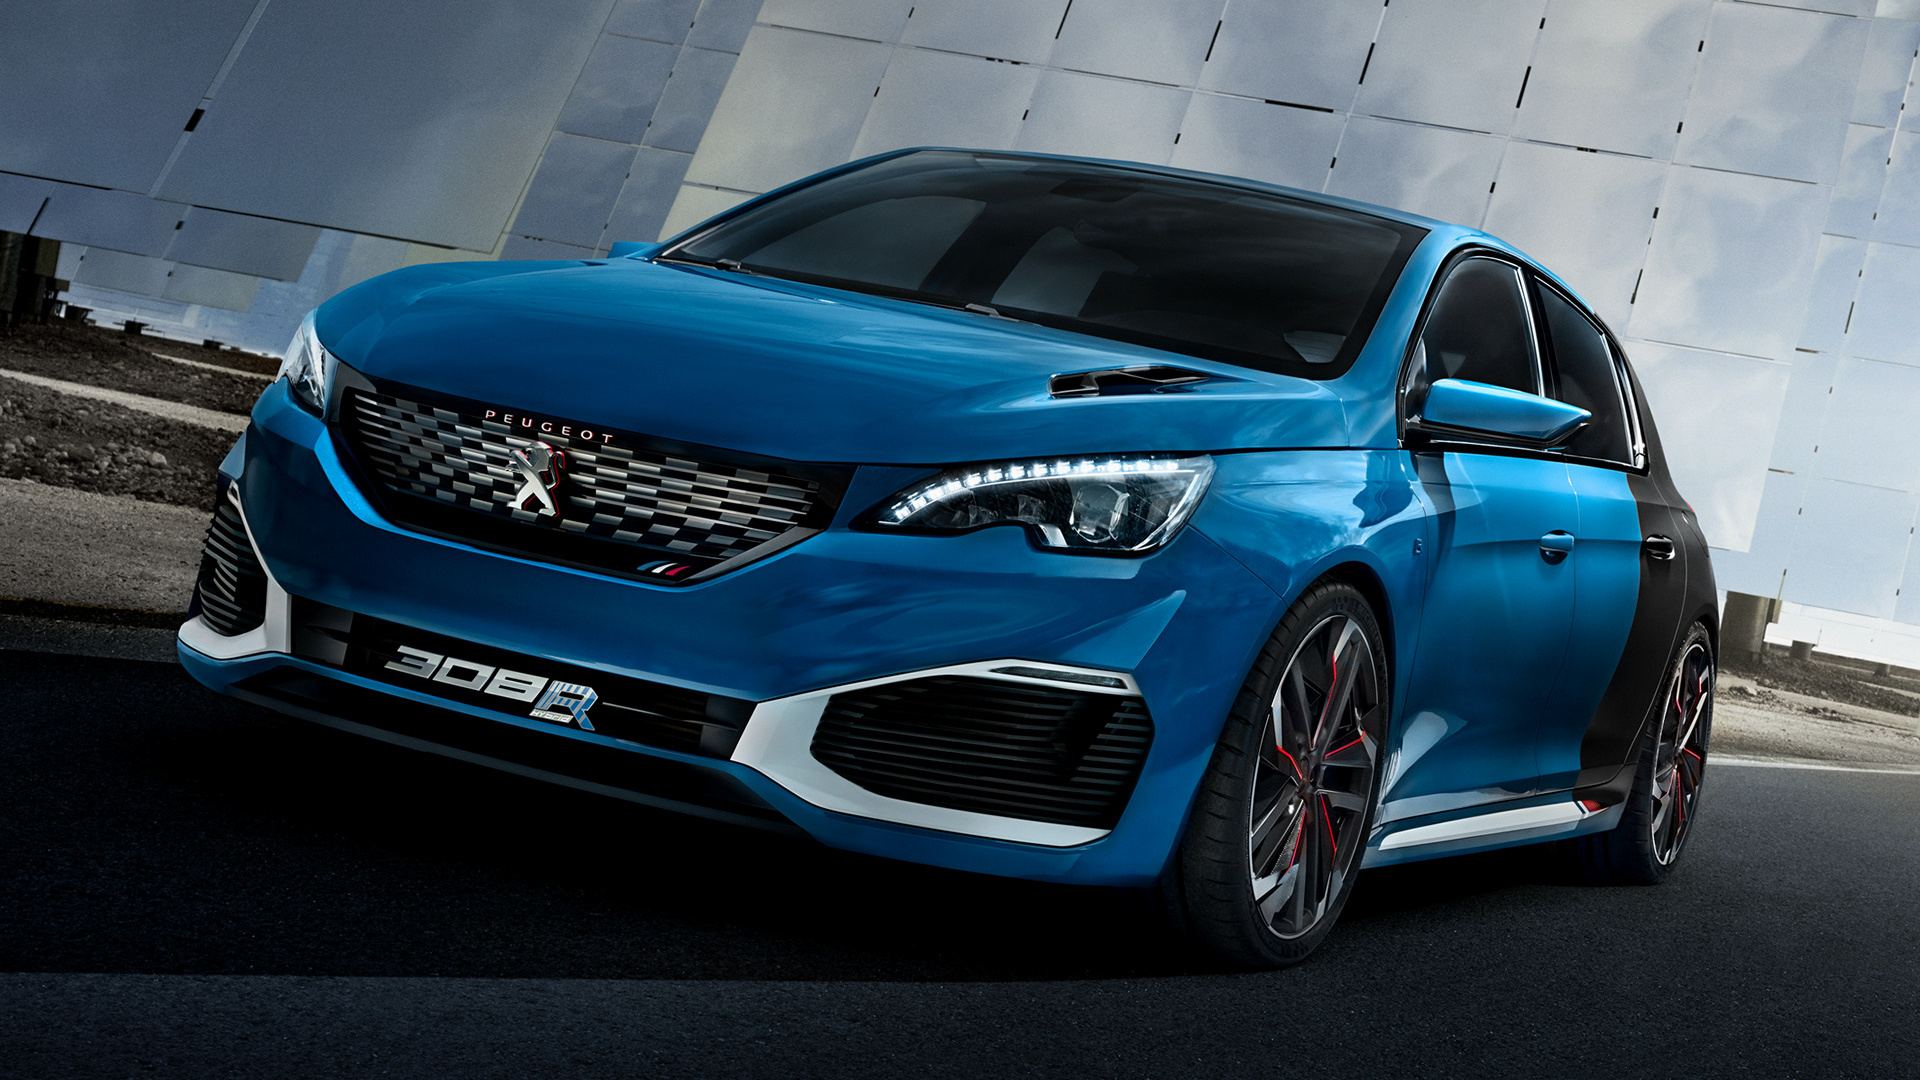 2015 Peugeot 308 R HYbrid Concept - Wallpapers and HD ...